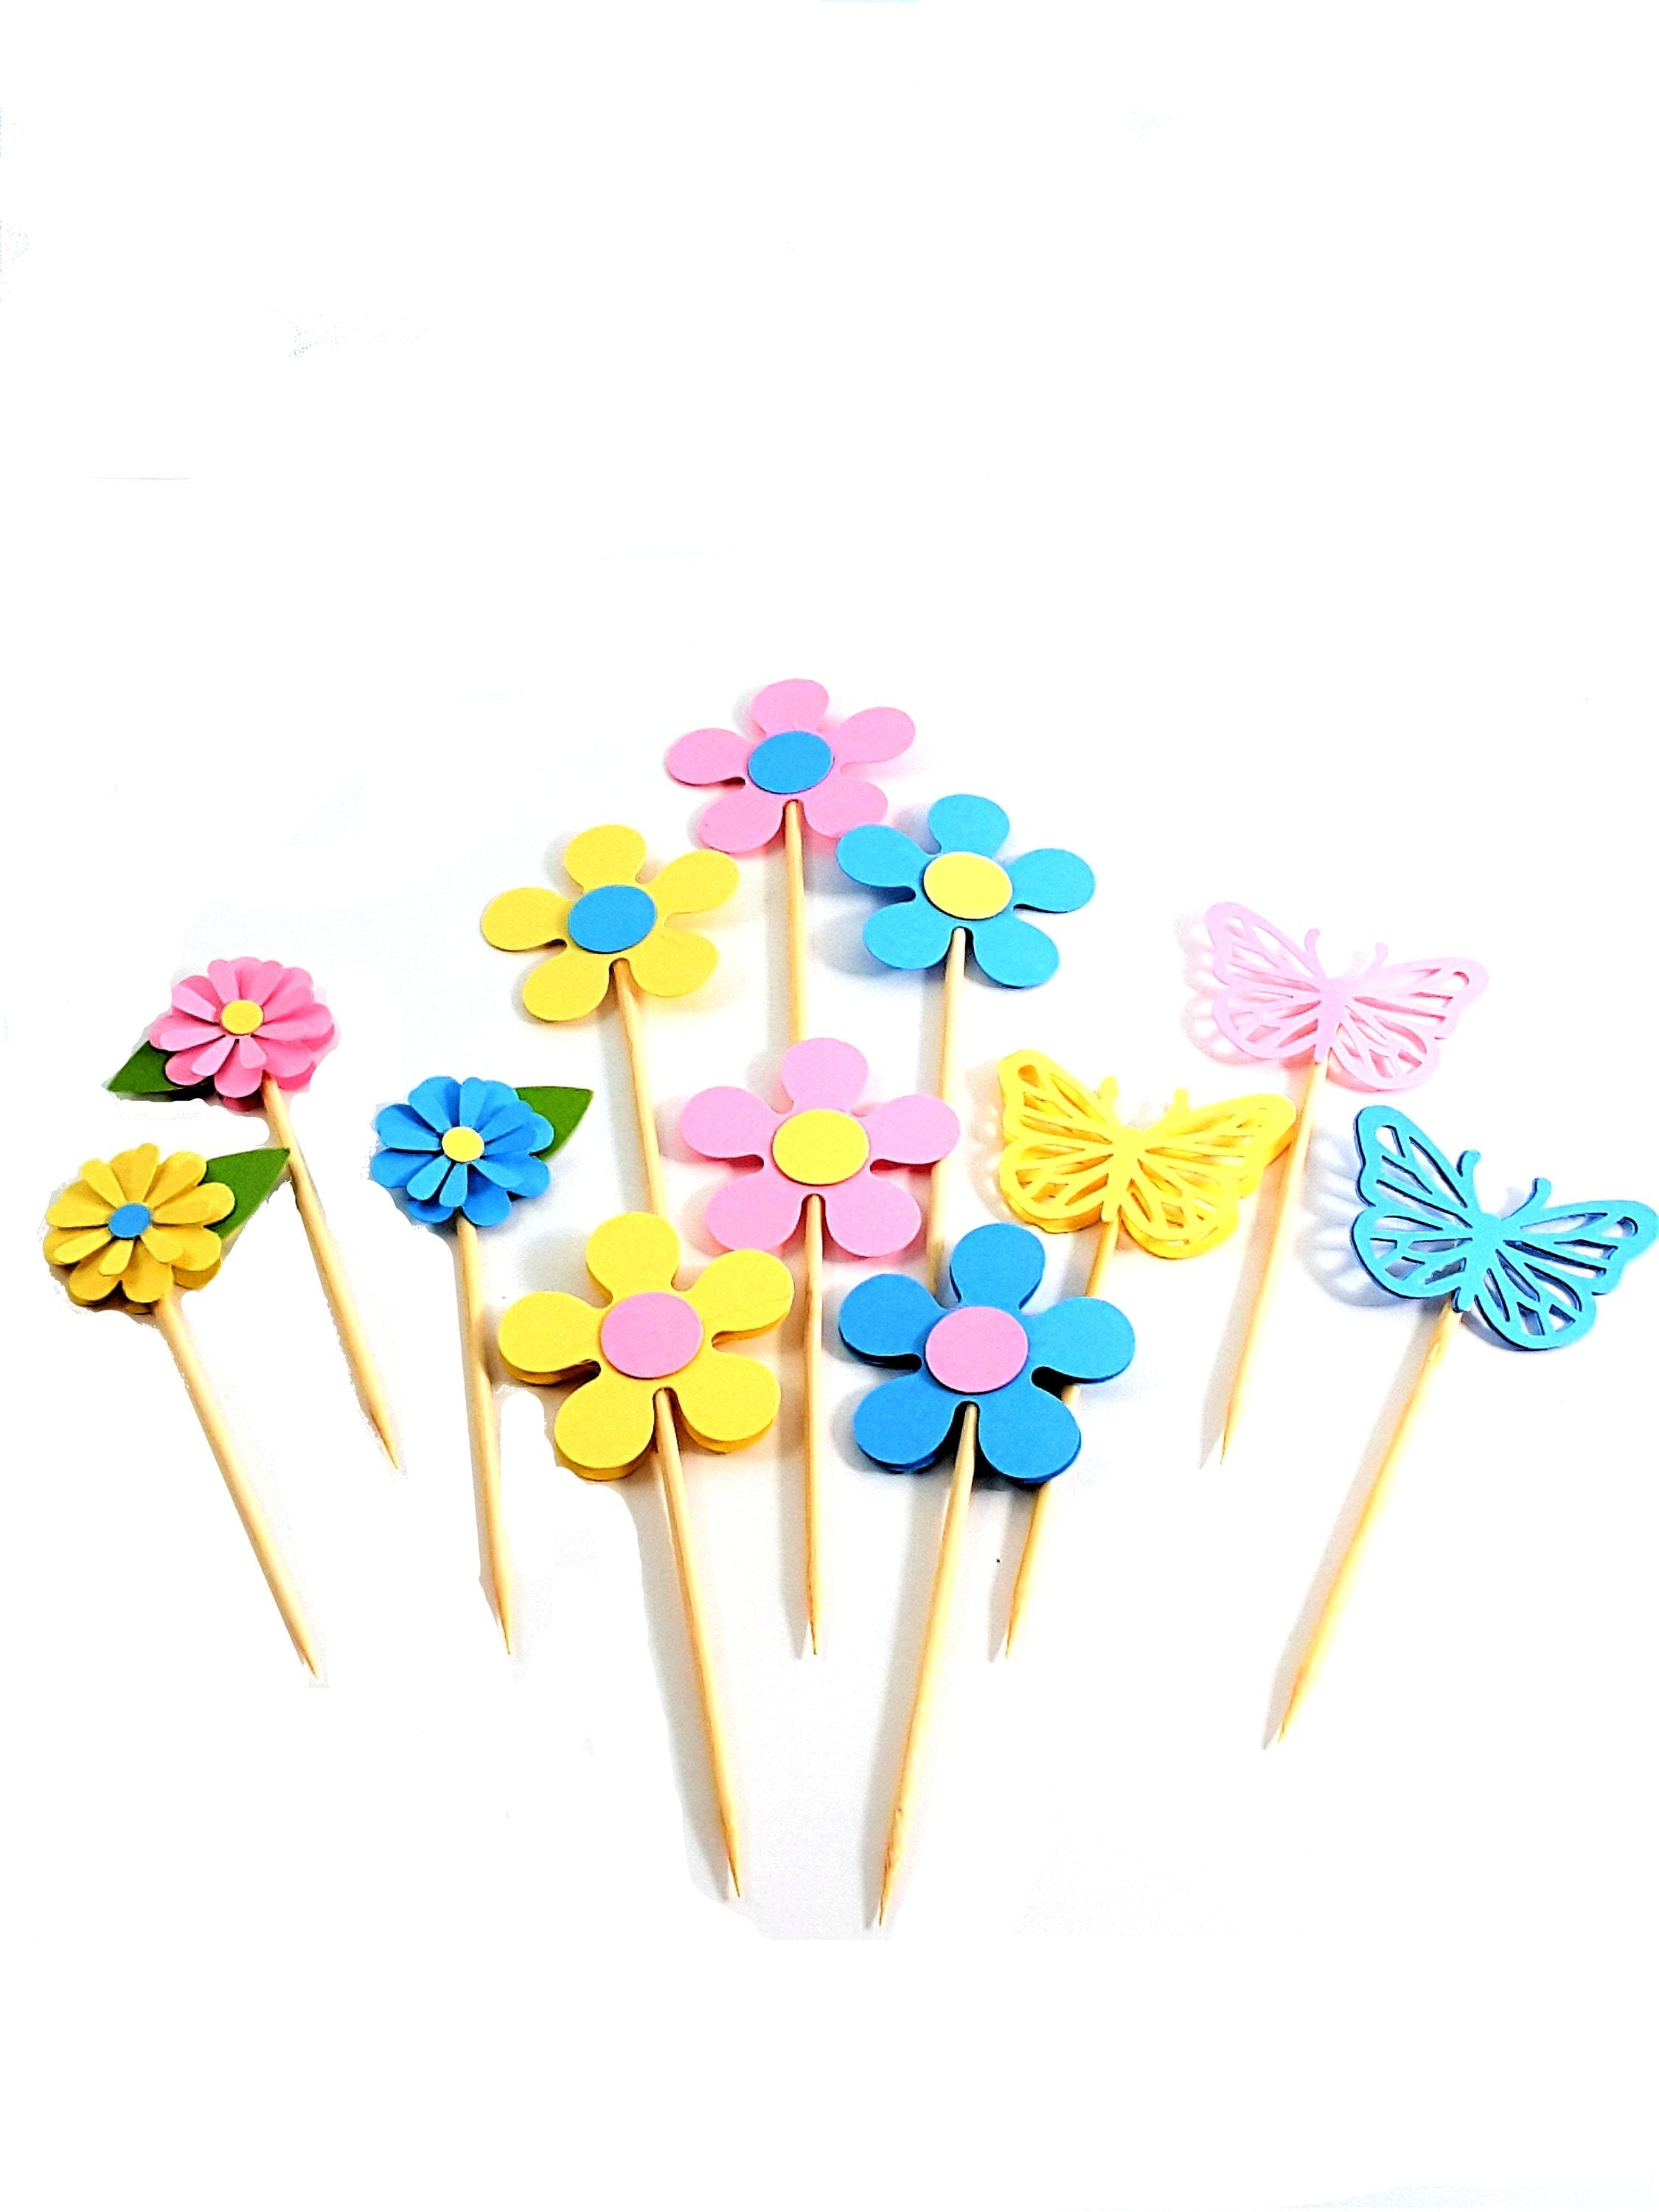 Solid Pastel Flower and Butterfly Cupcake Toppers for All Occasions, including Birthdays - TheLastWordBish.com